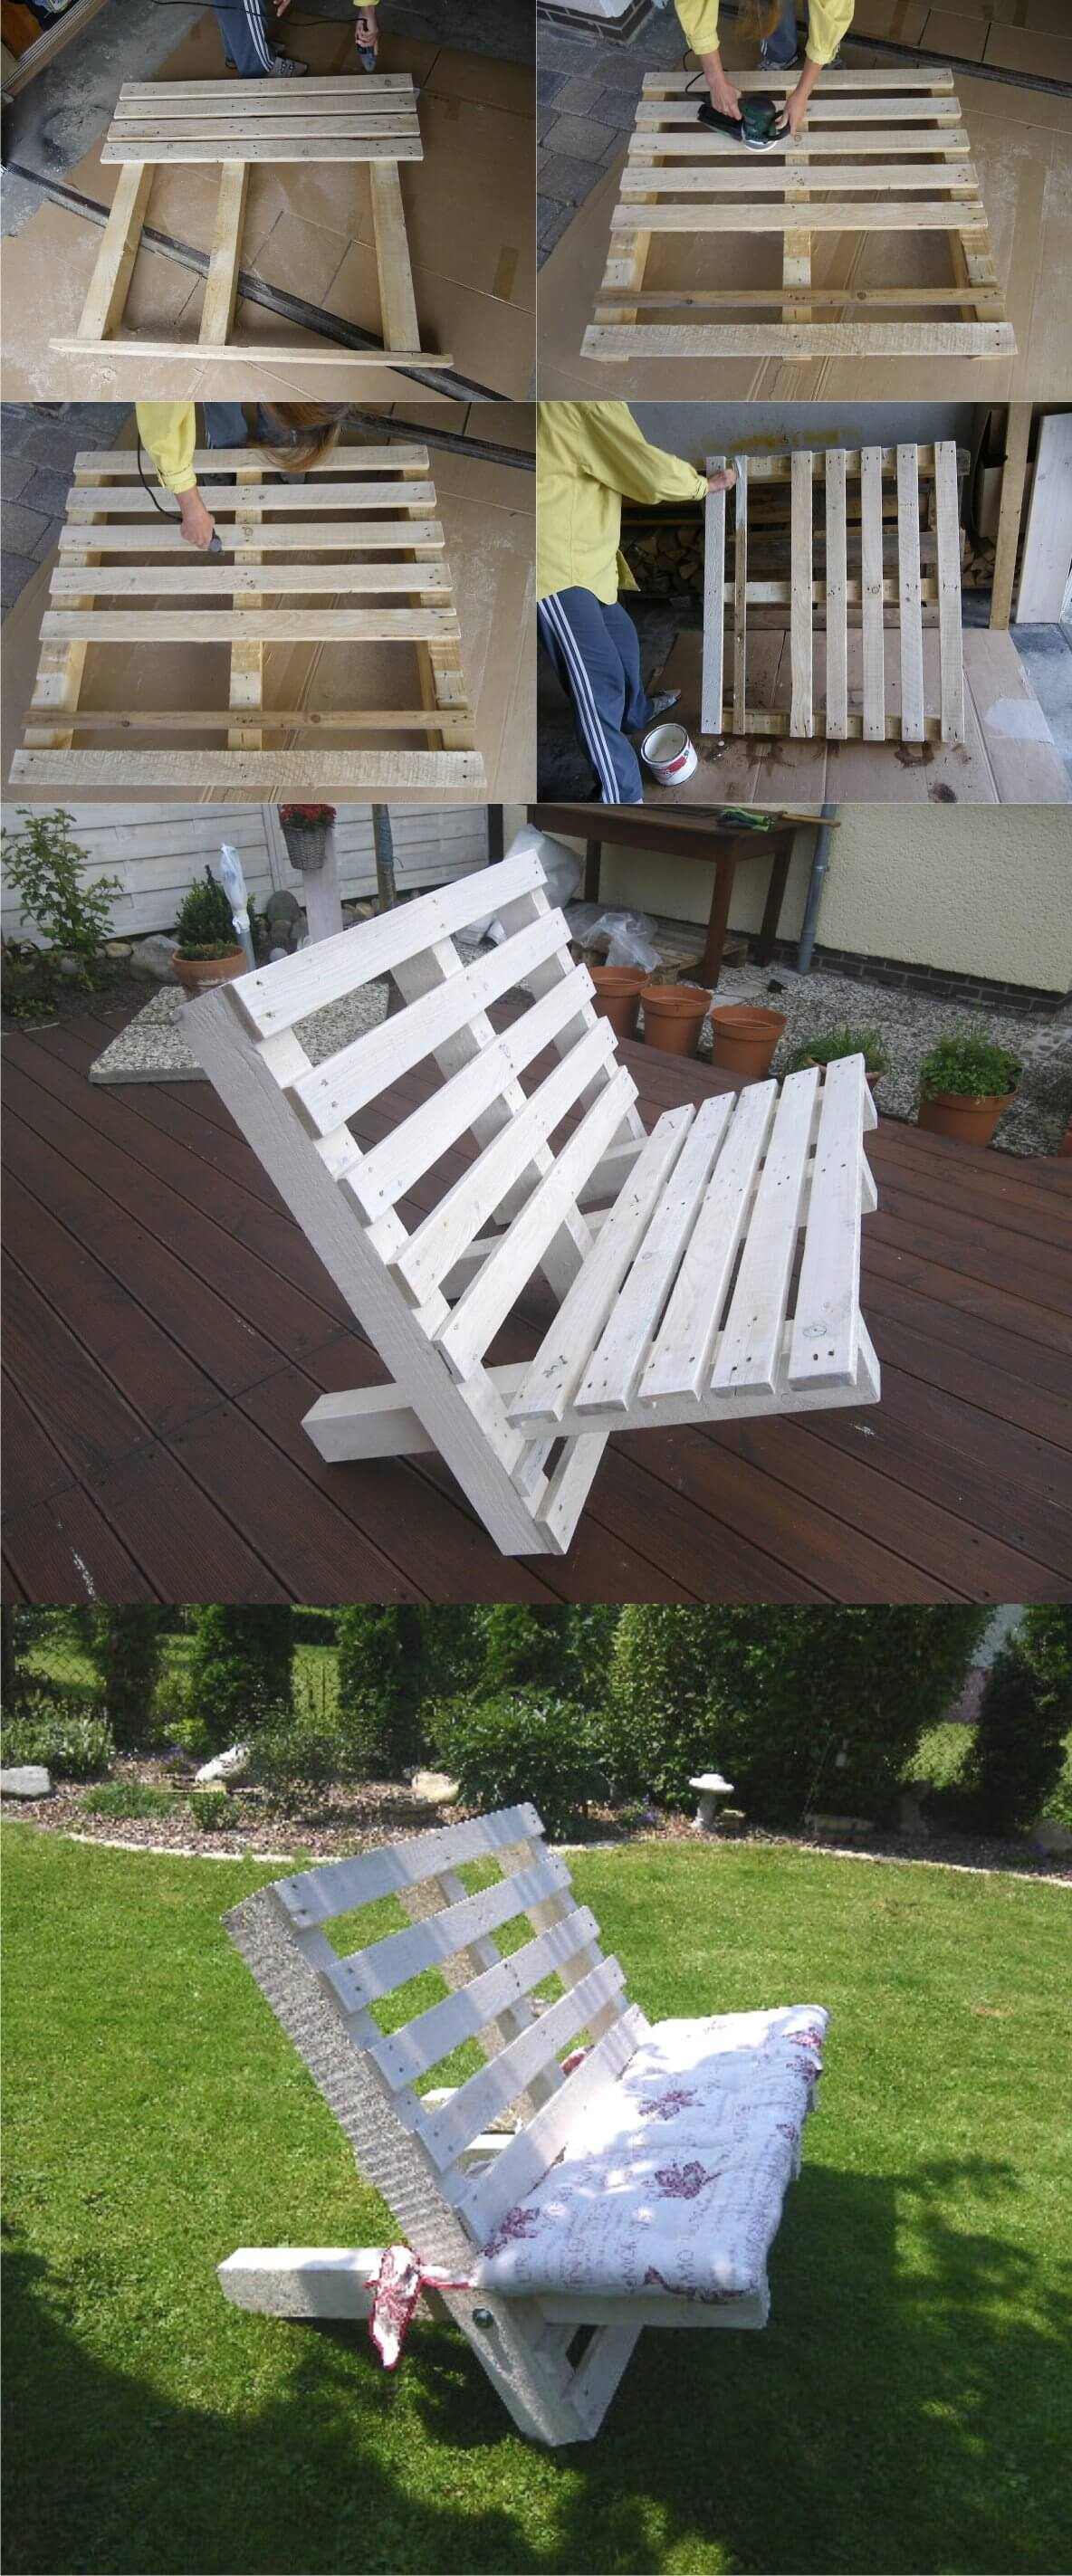 Pallet Bench Ideas Part - 48: A White Bench Created From Two Pallets